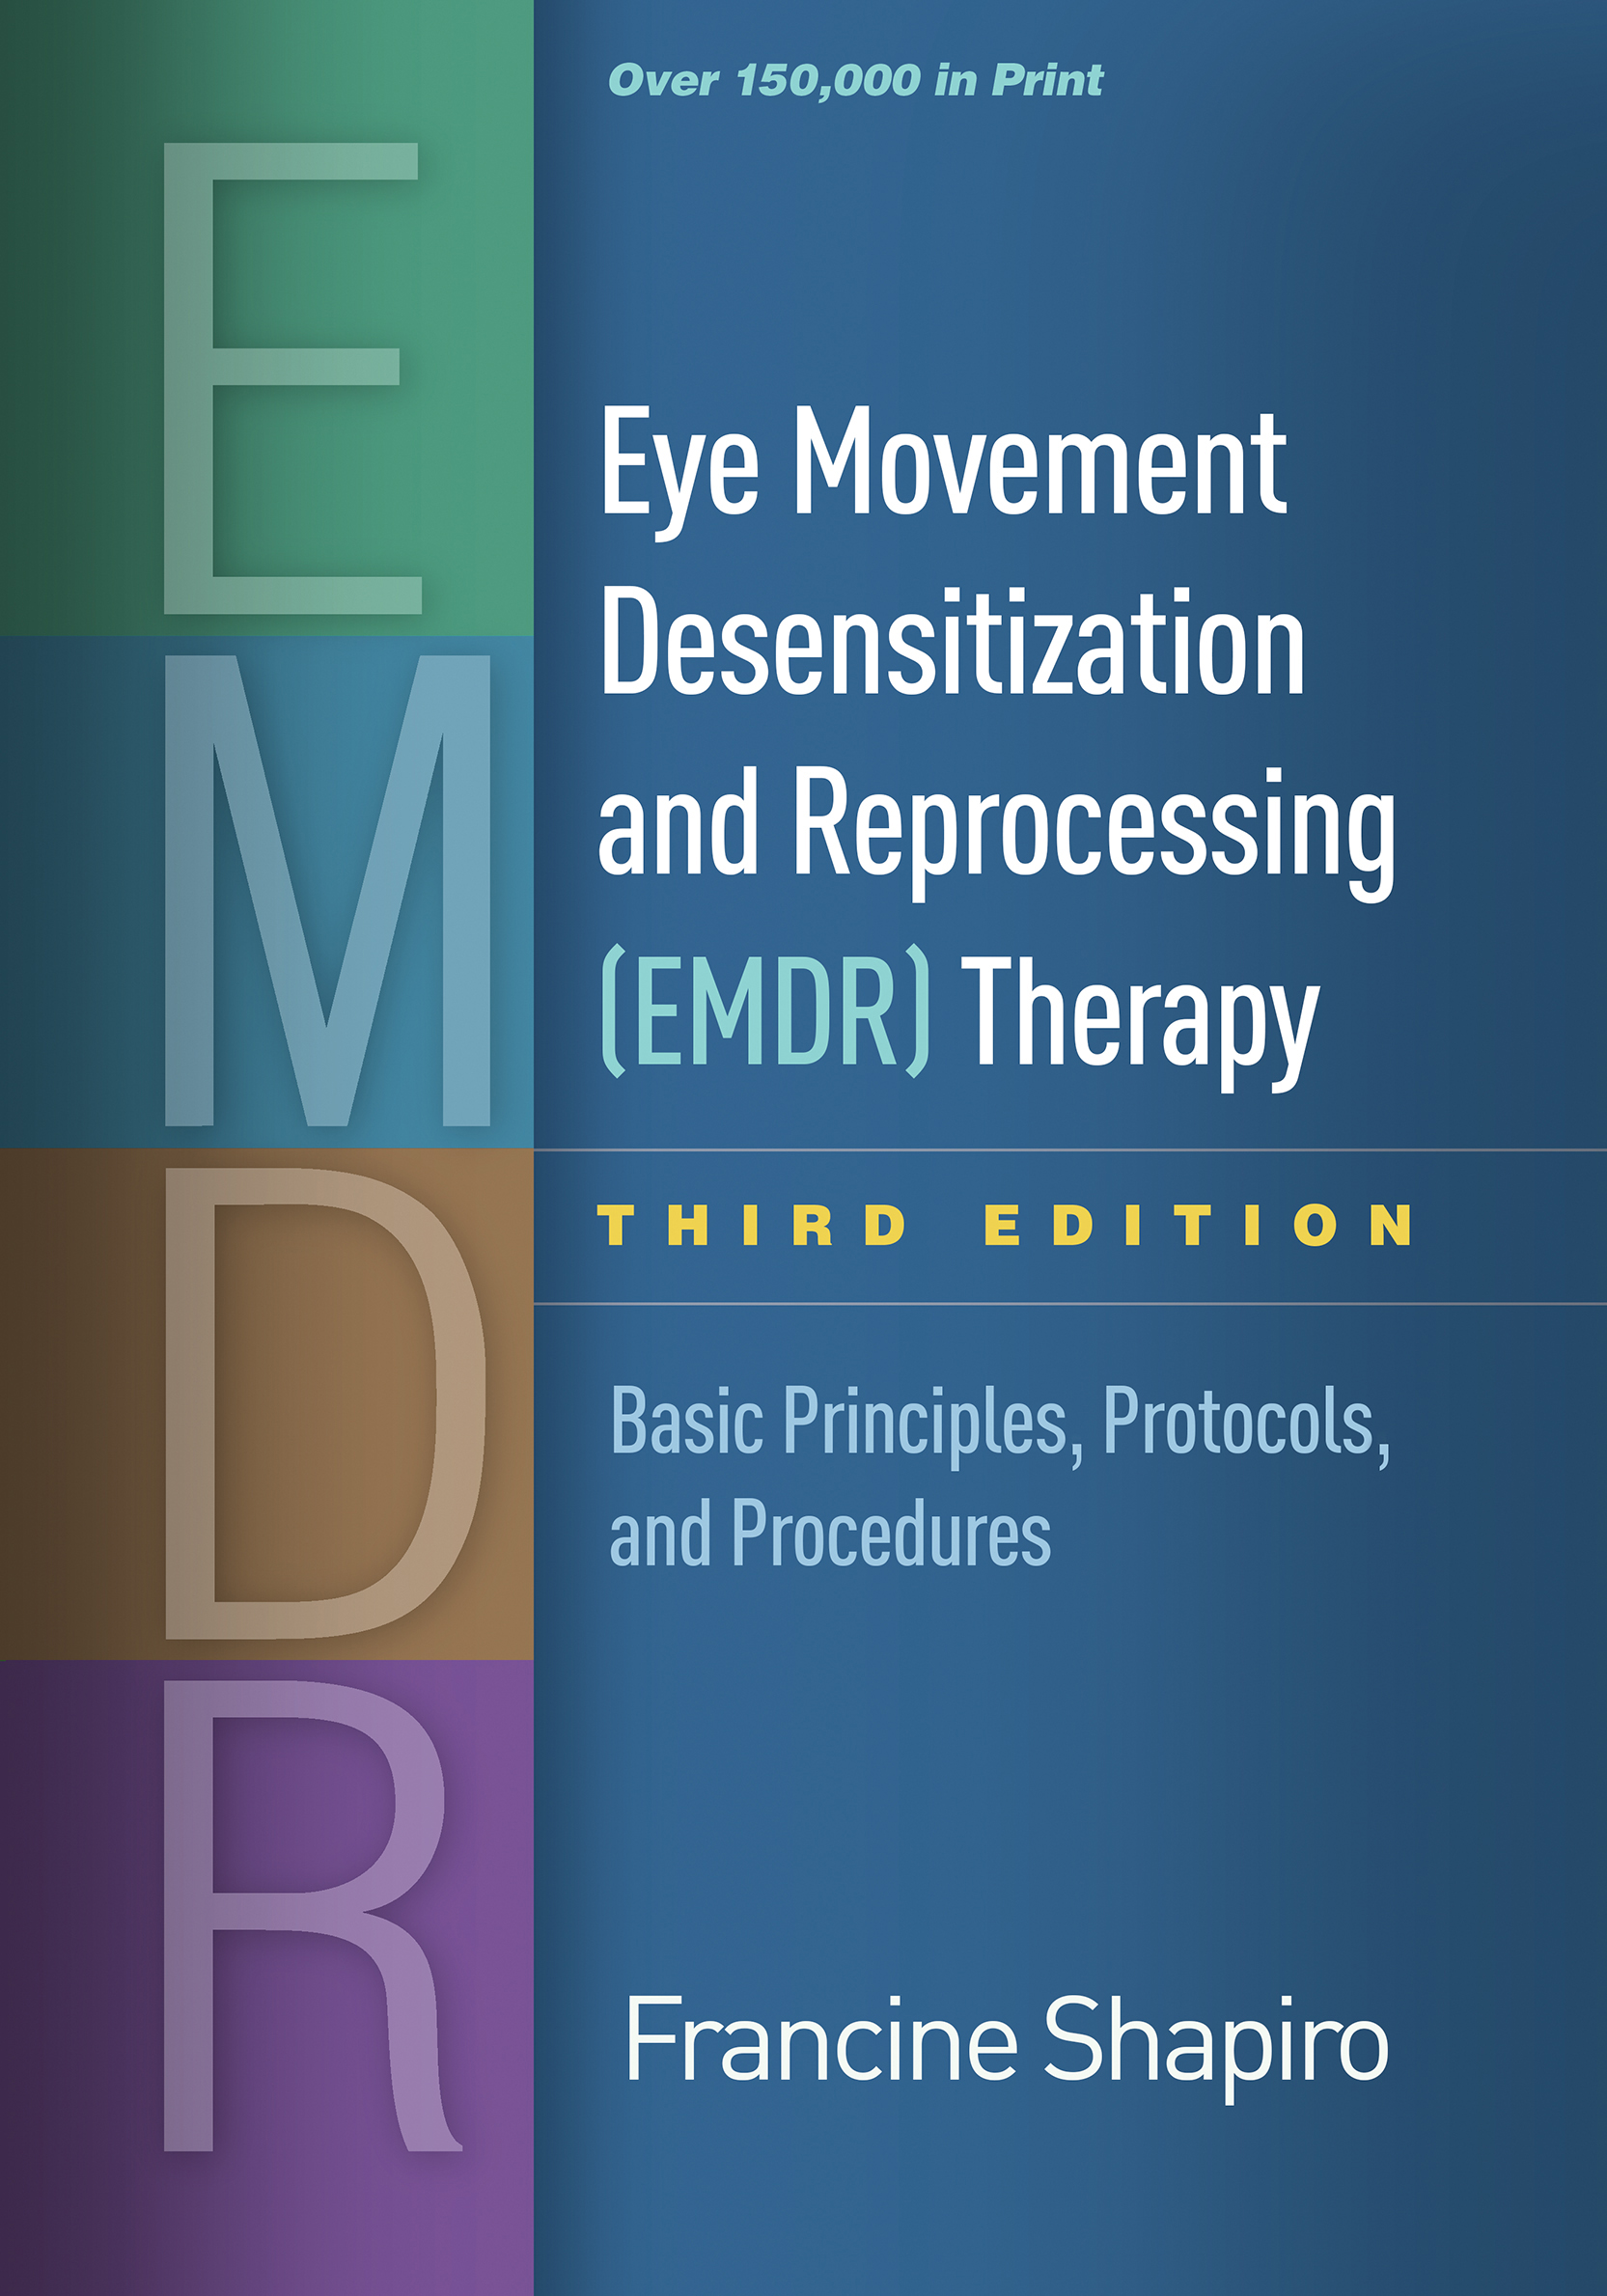 Eye Movement Desensitization and Reprocessing (EMDR) Therapy, Third Edition: Basic Principles, Protocols, and Procedures book cover